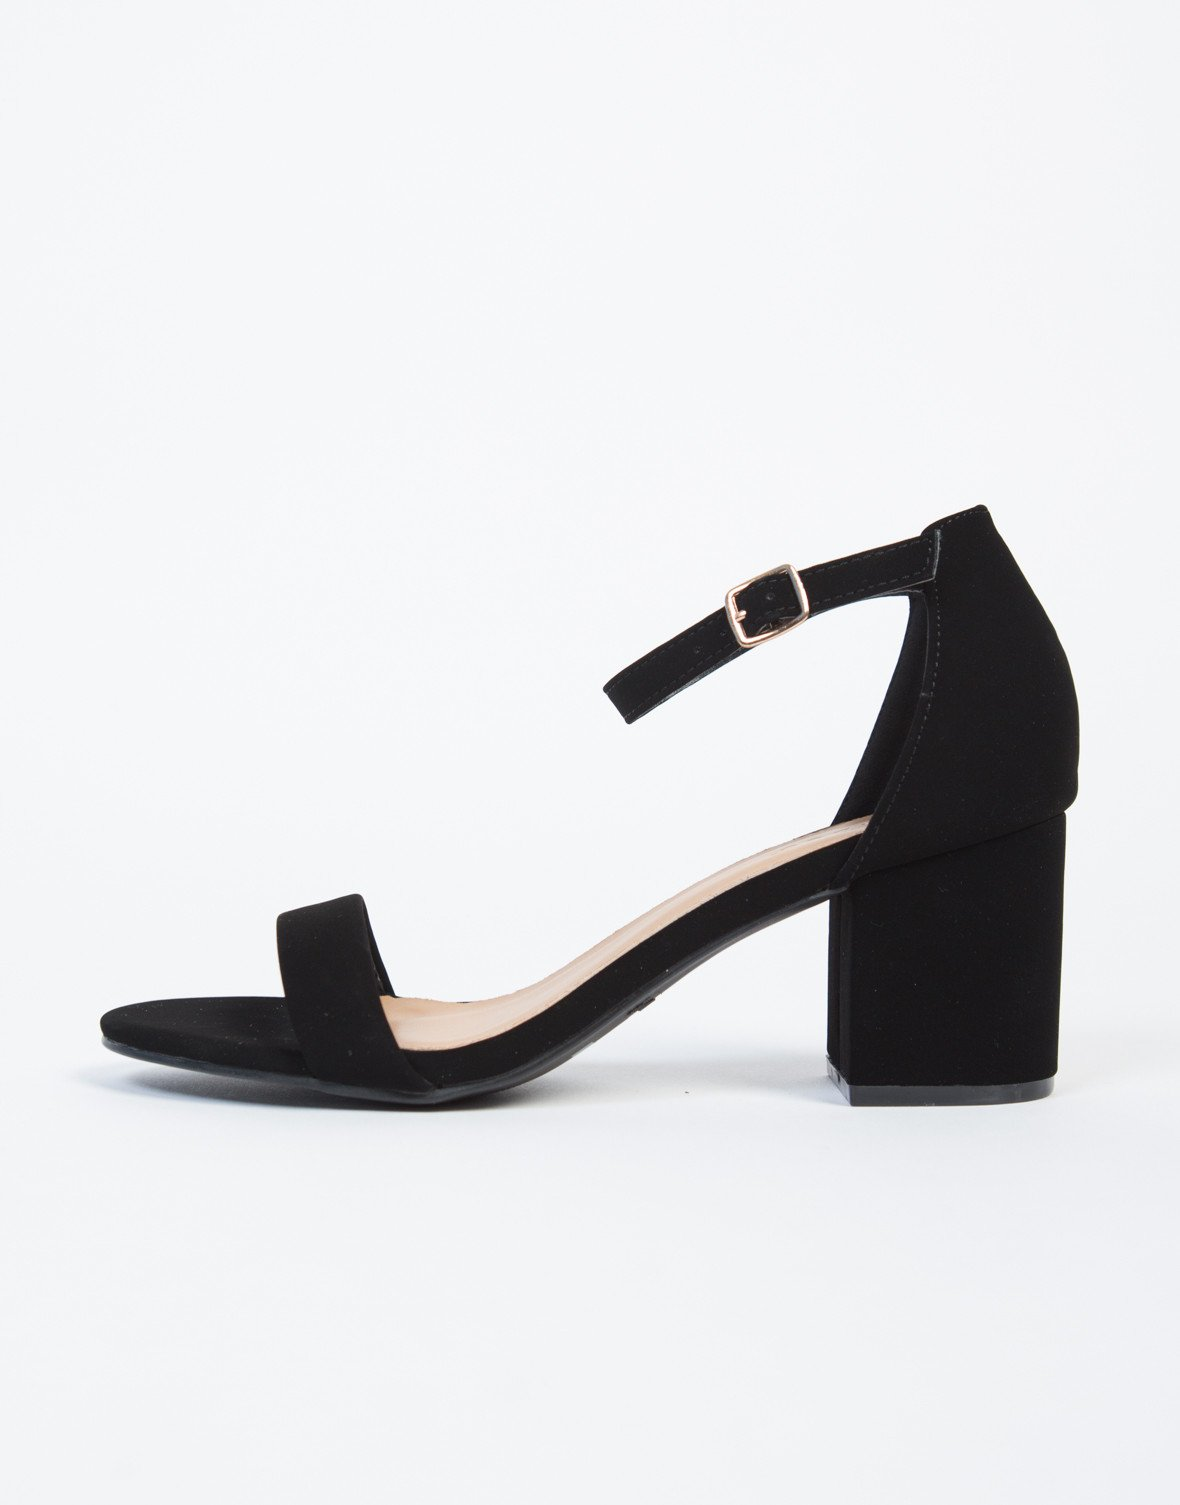 eebcf5c605e Ankle Strapped Block Heel Sandals